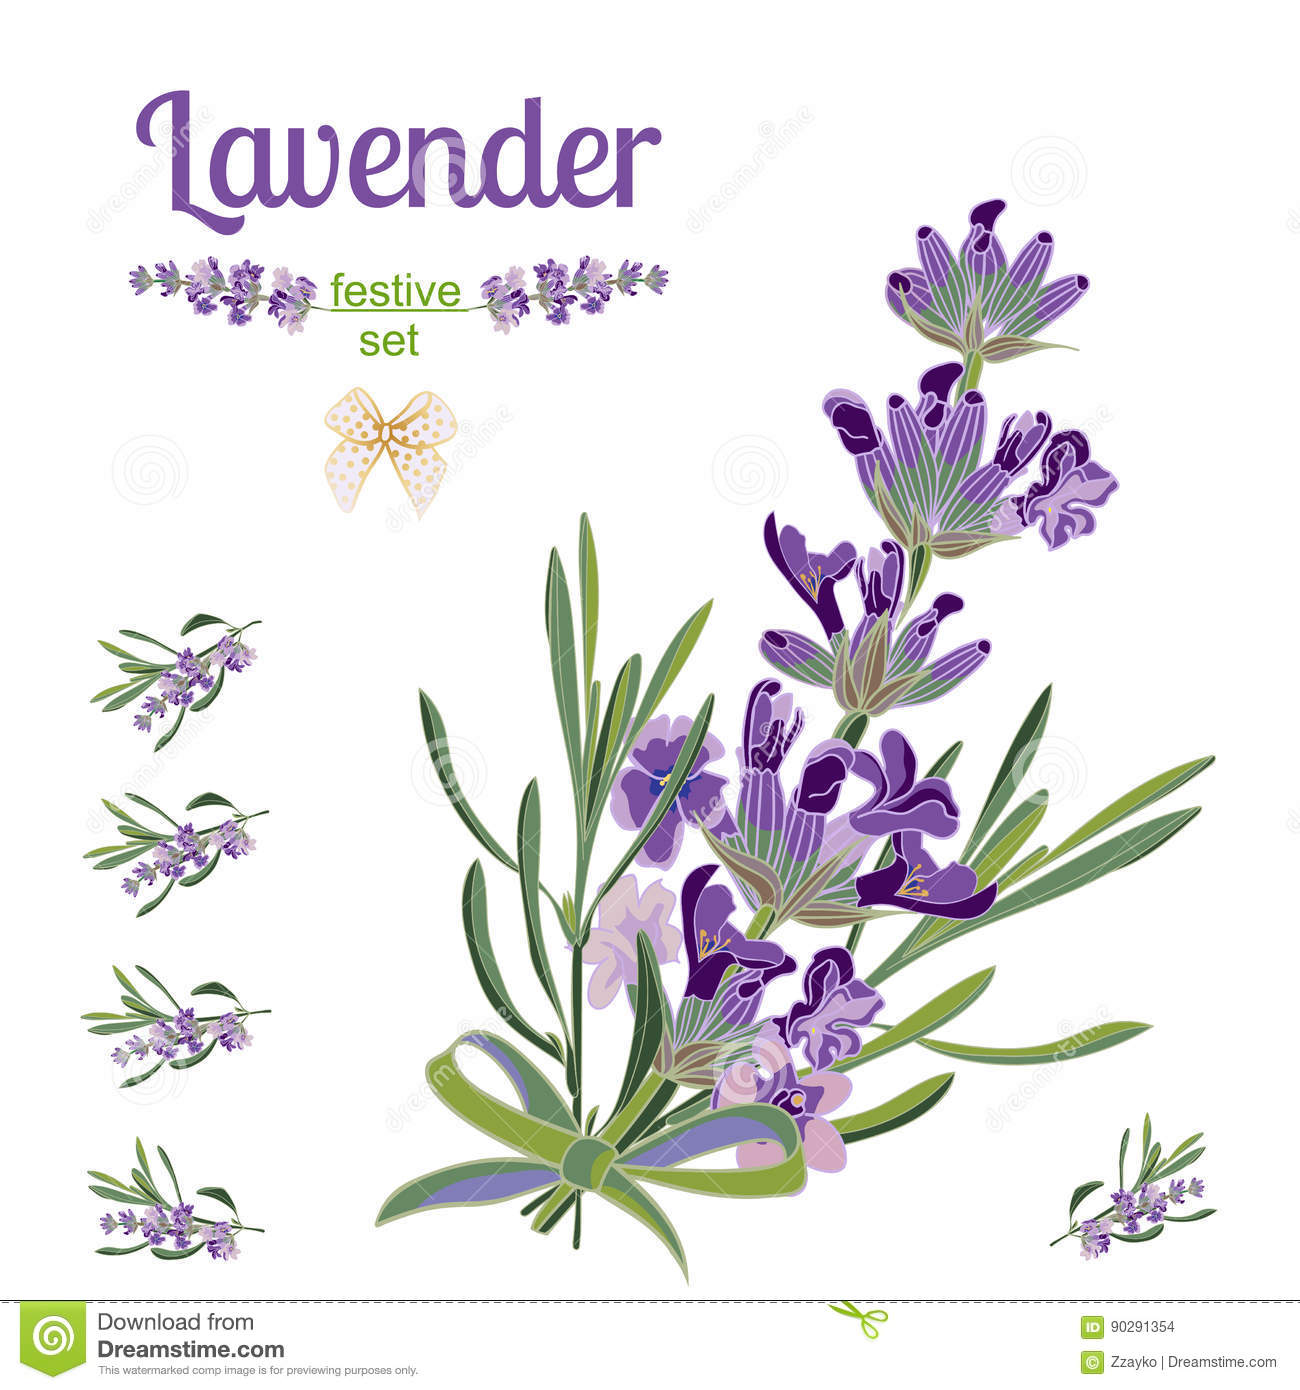 Set Festive Border And Elements With Lavender Flowers For Greeting